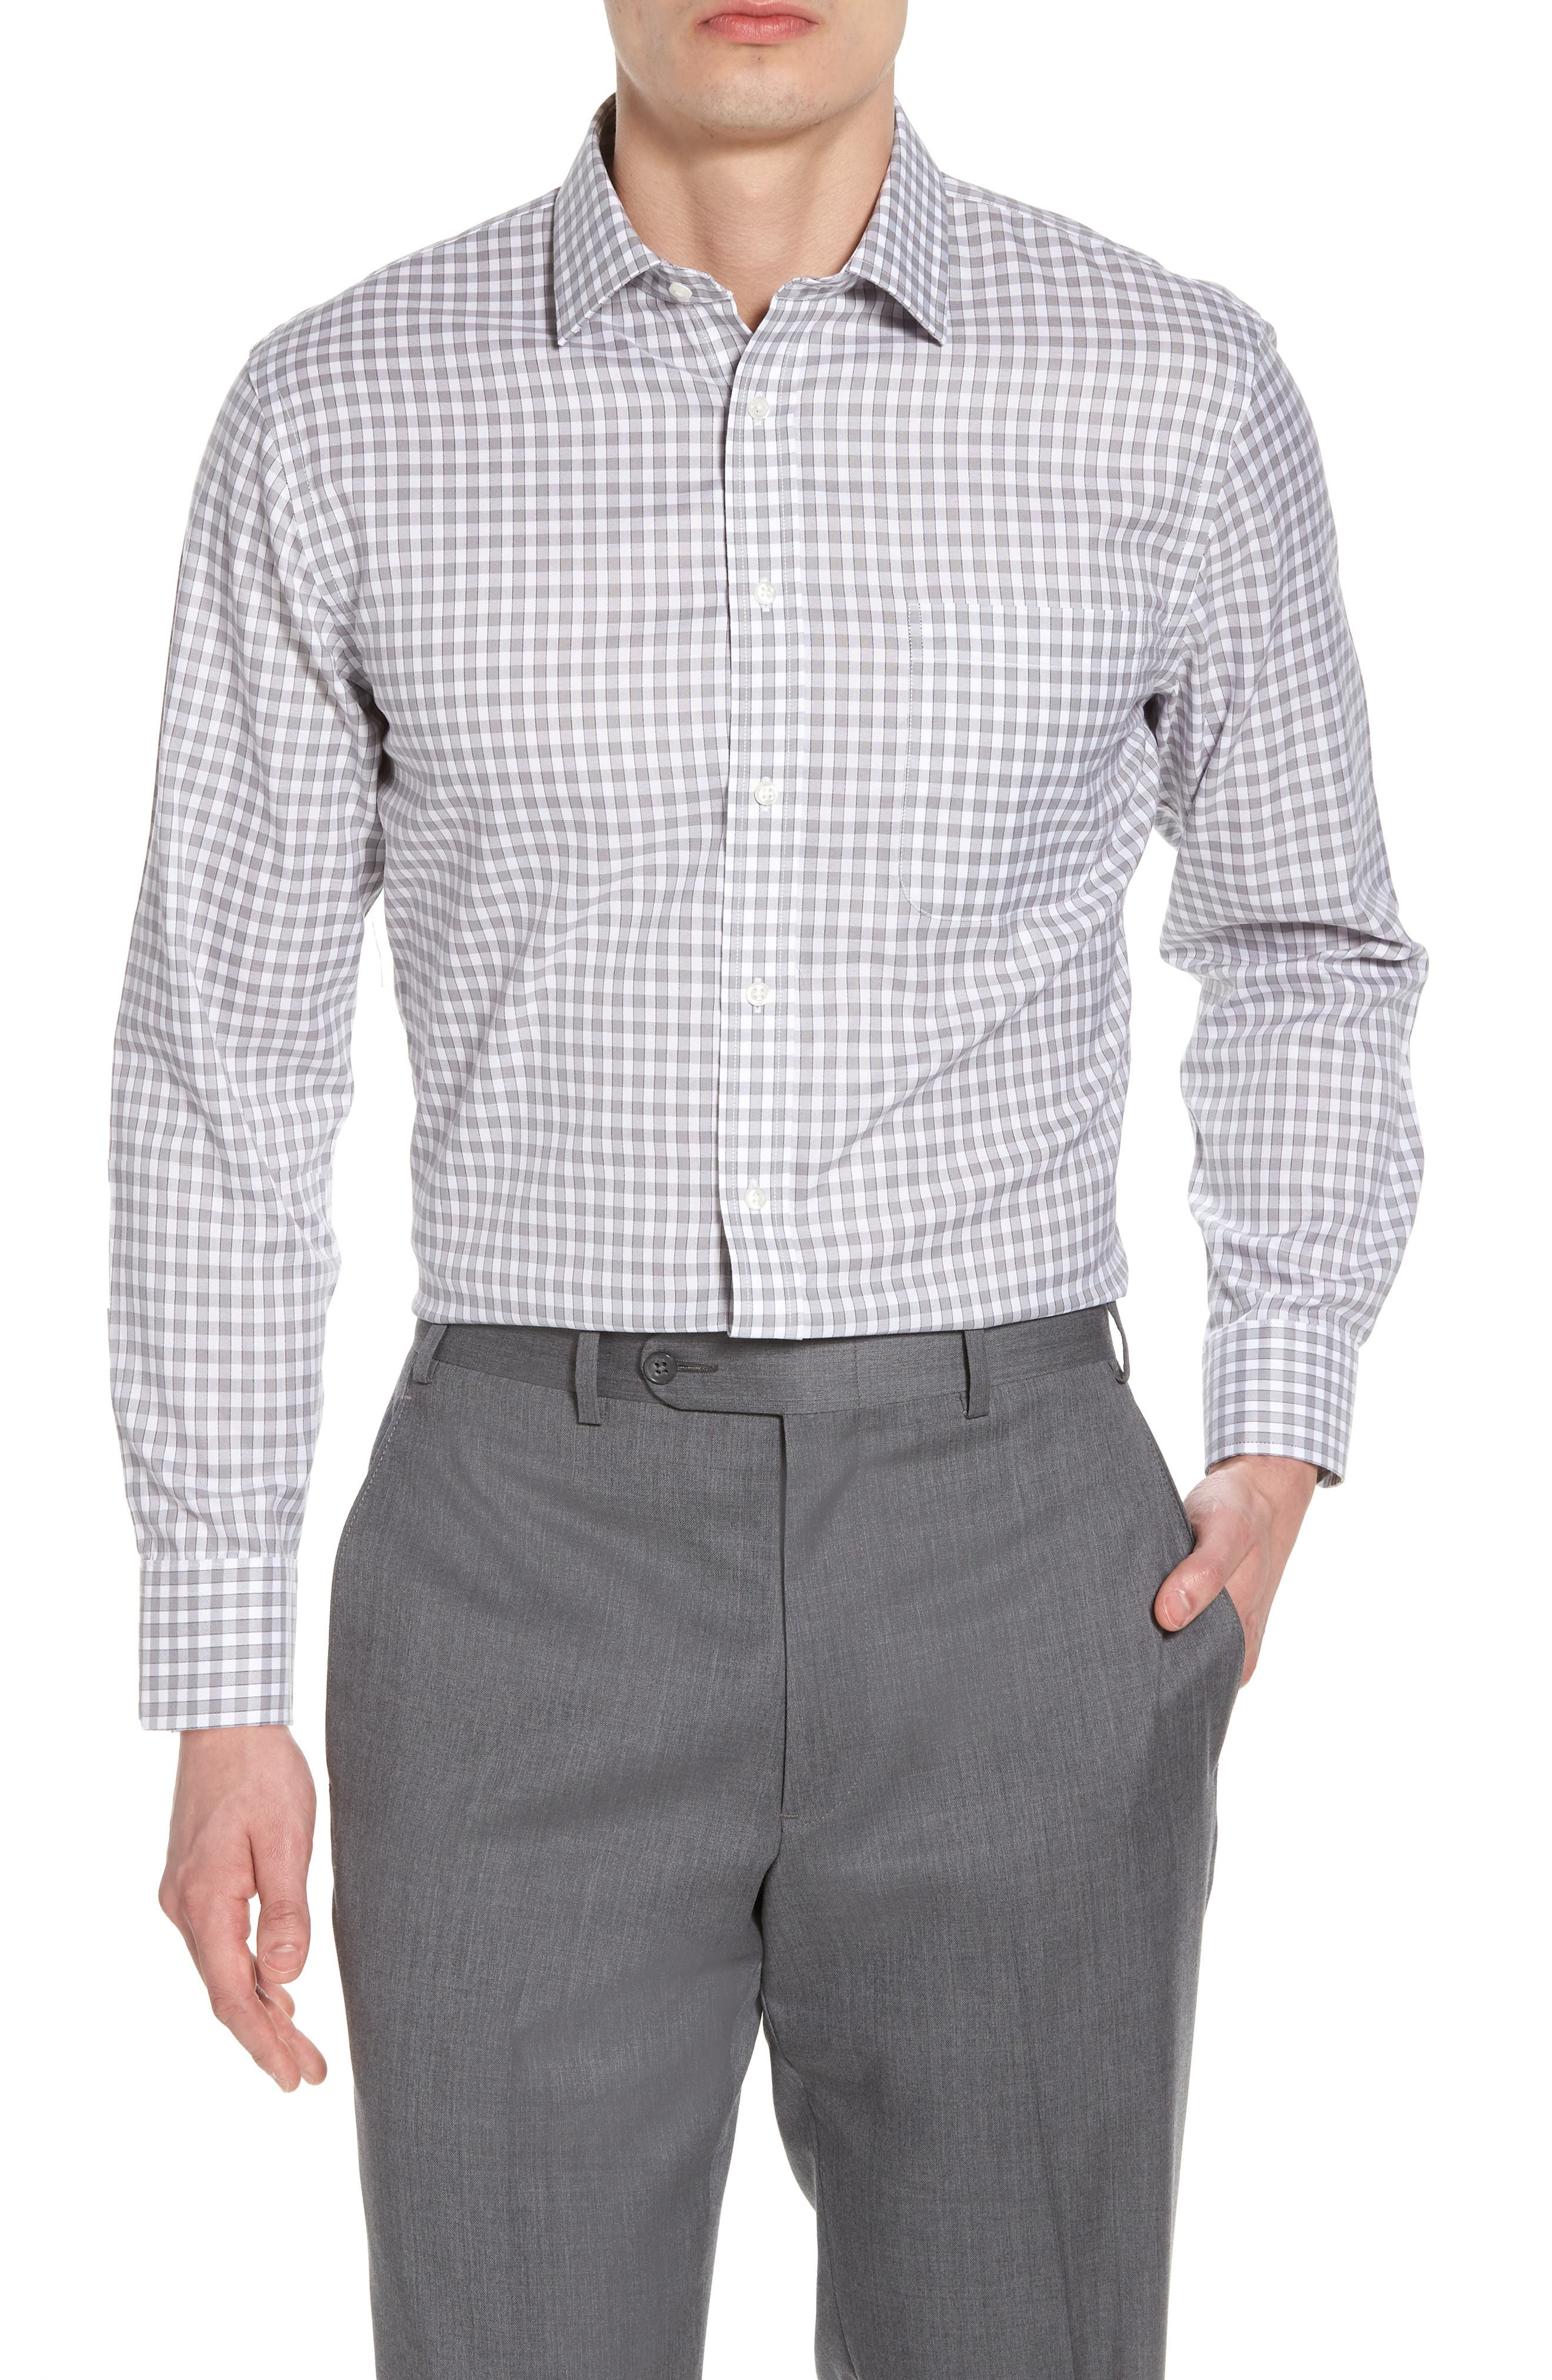 Alternate Image 1 Selected - Nordstrom Men's Shop Smartcare™ Trim Fit Check Dress Shirt